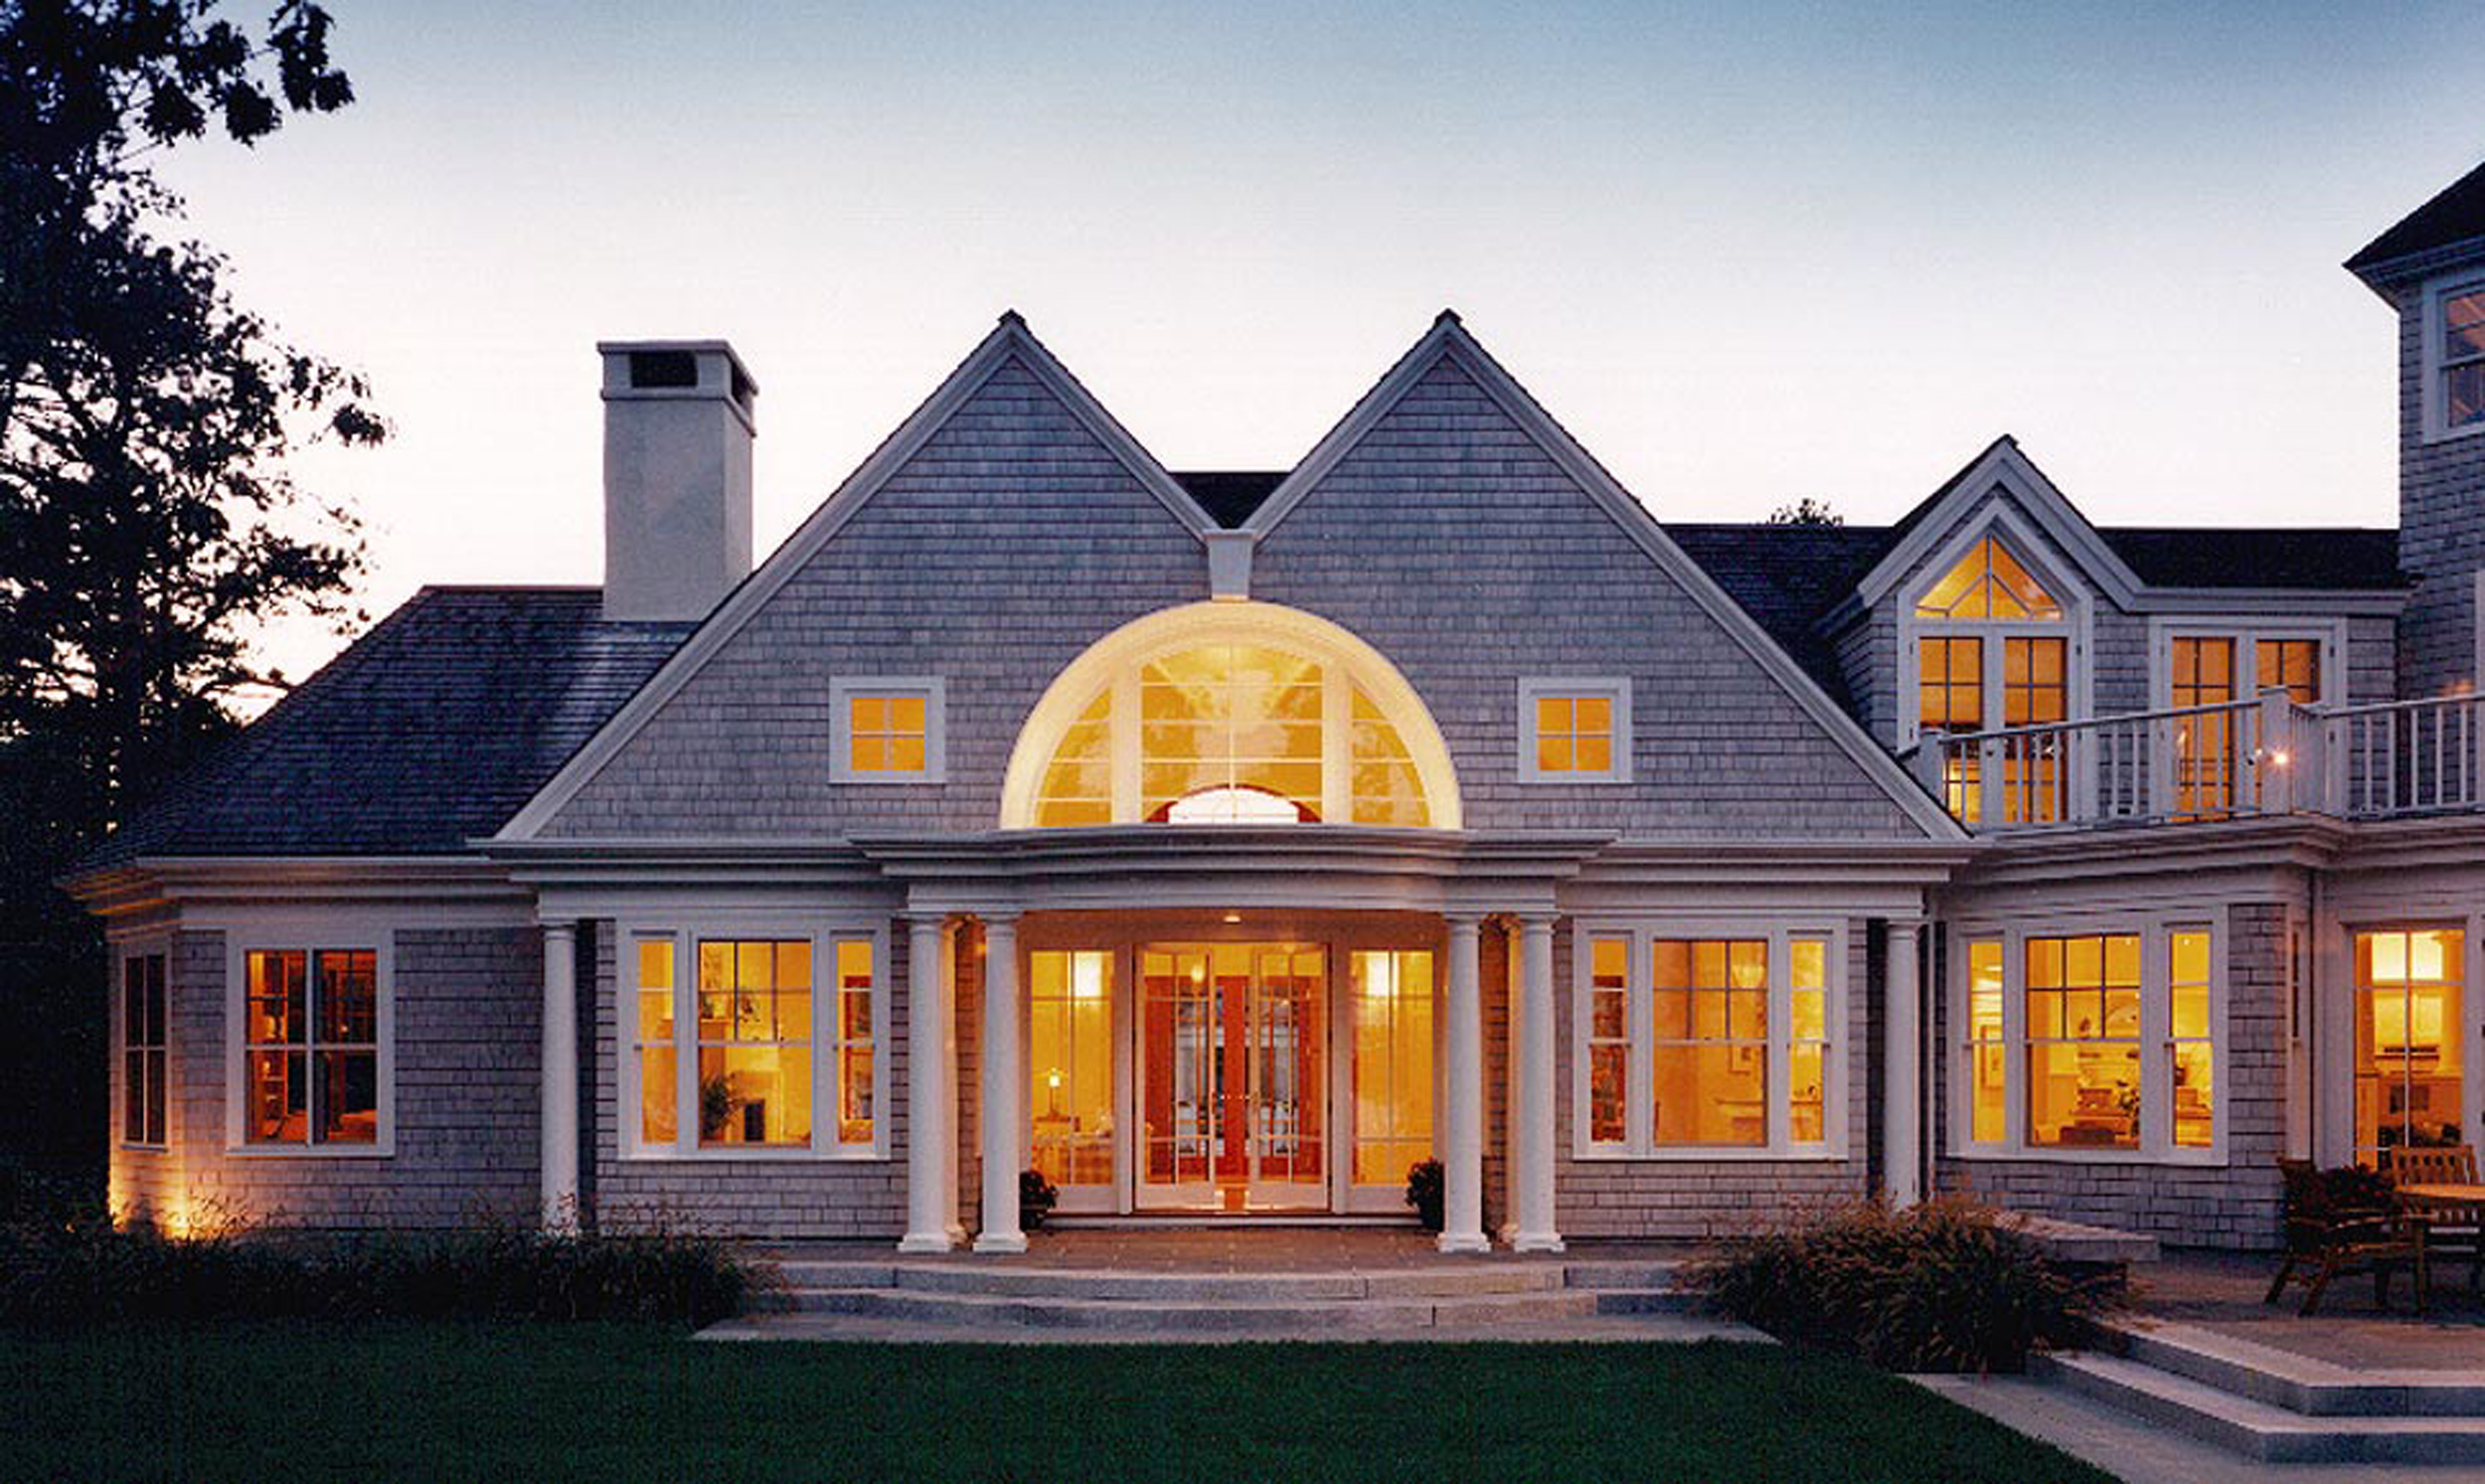 Lurie_cotuit_-_concealed_downspout_and_continuous_window_muntin_configuration.jpg